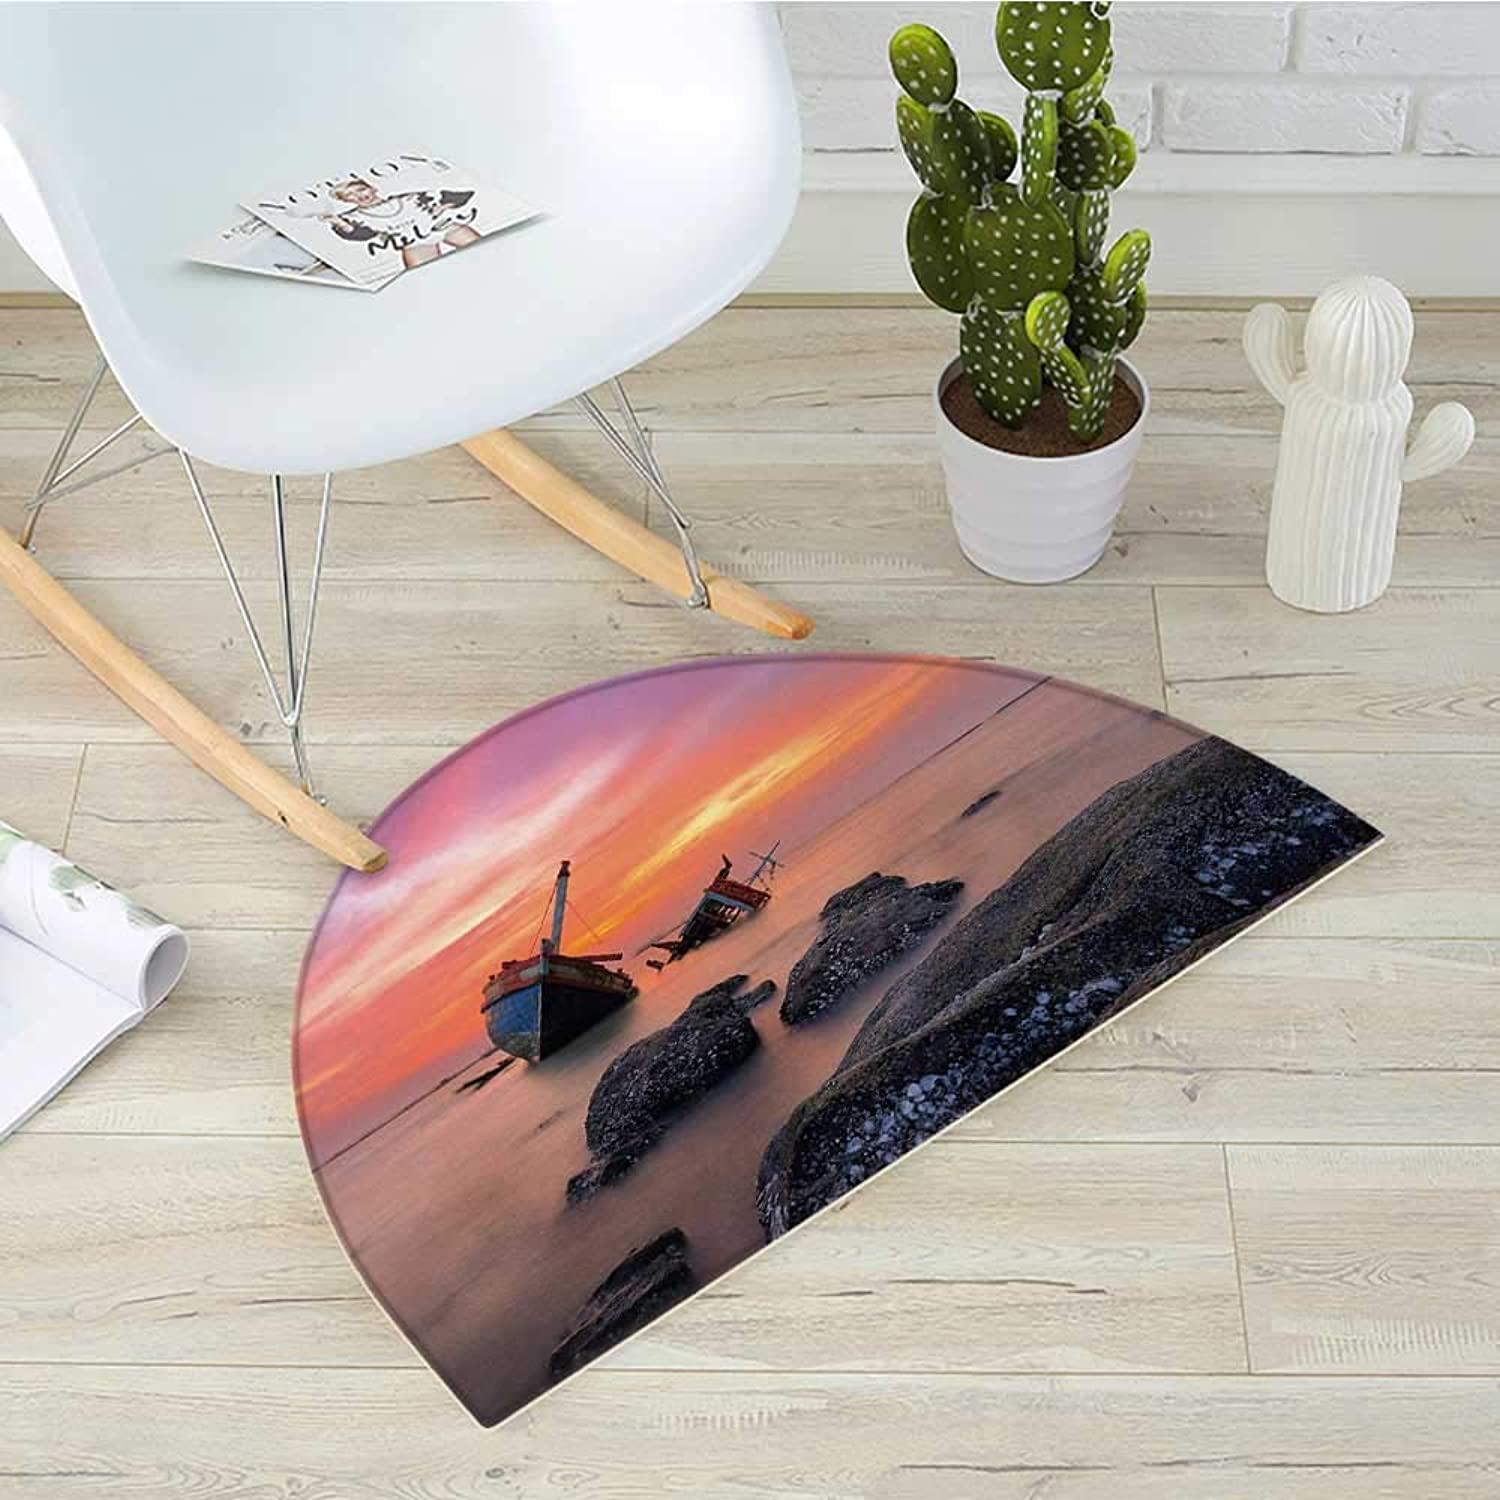 Shipwreck Semicircular CushionSunken Aground Boat Vessel in Foggy Water Before Exquisite Sky at Sunset Image Entry Door Mat H 39.3  xD 59  orange Grey